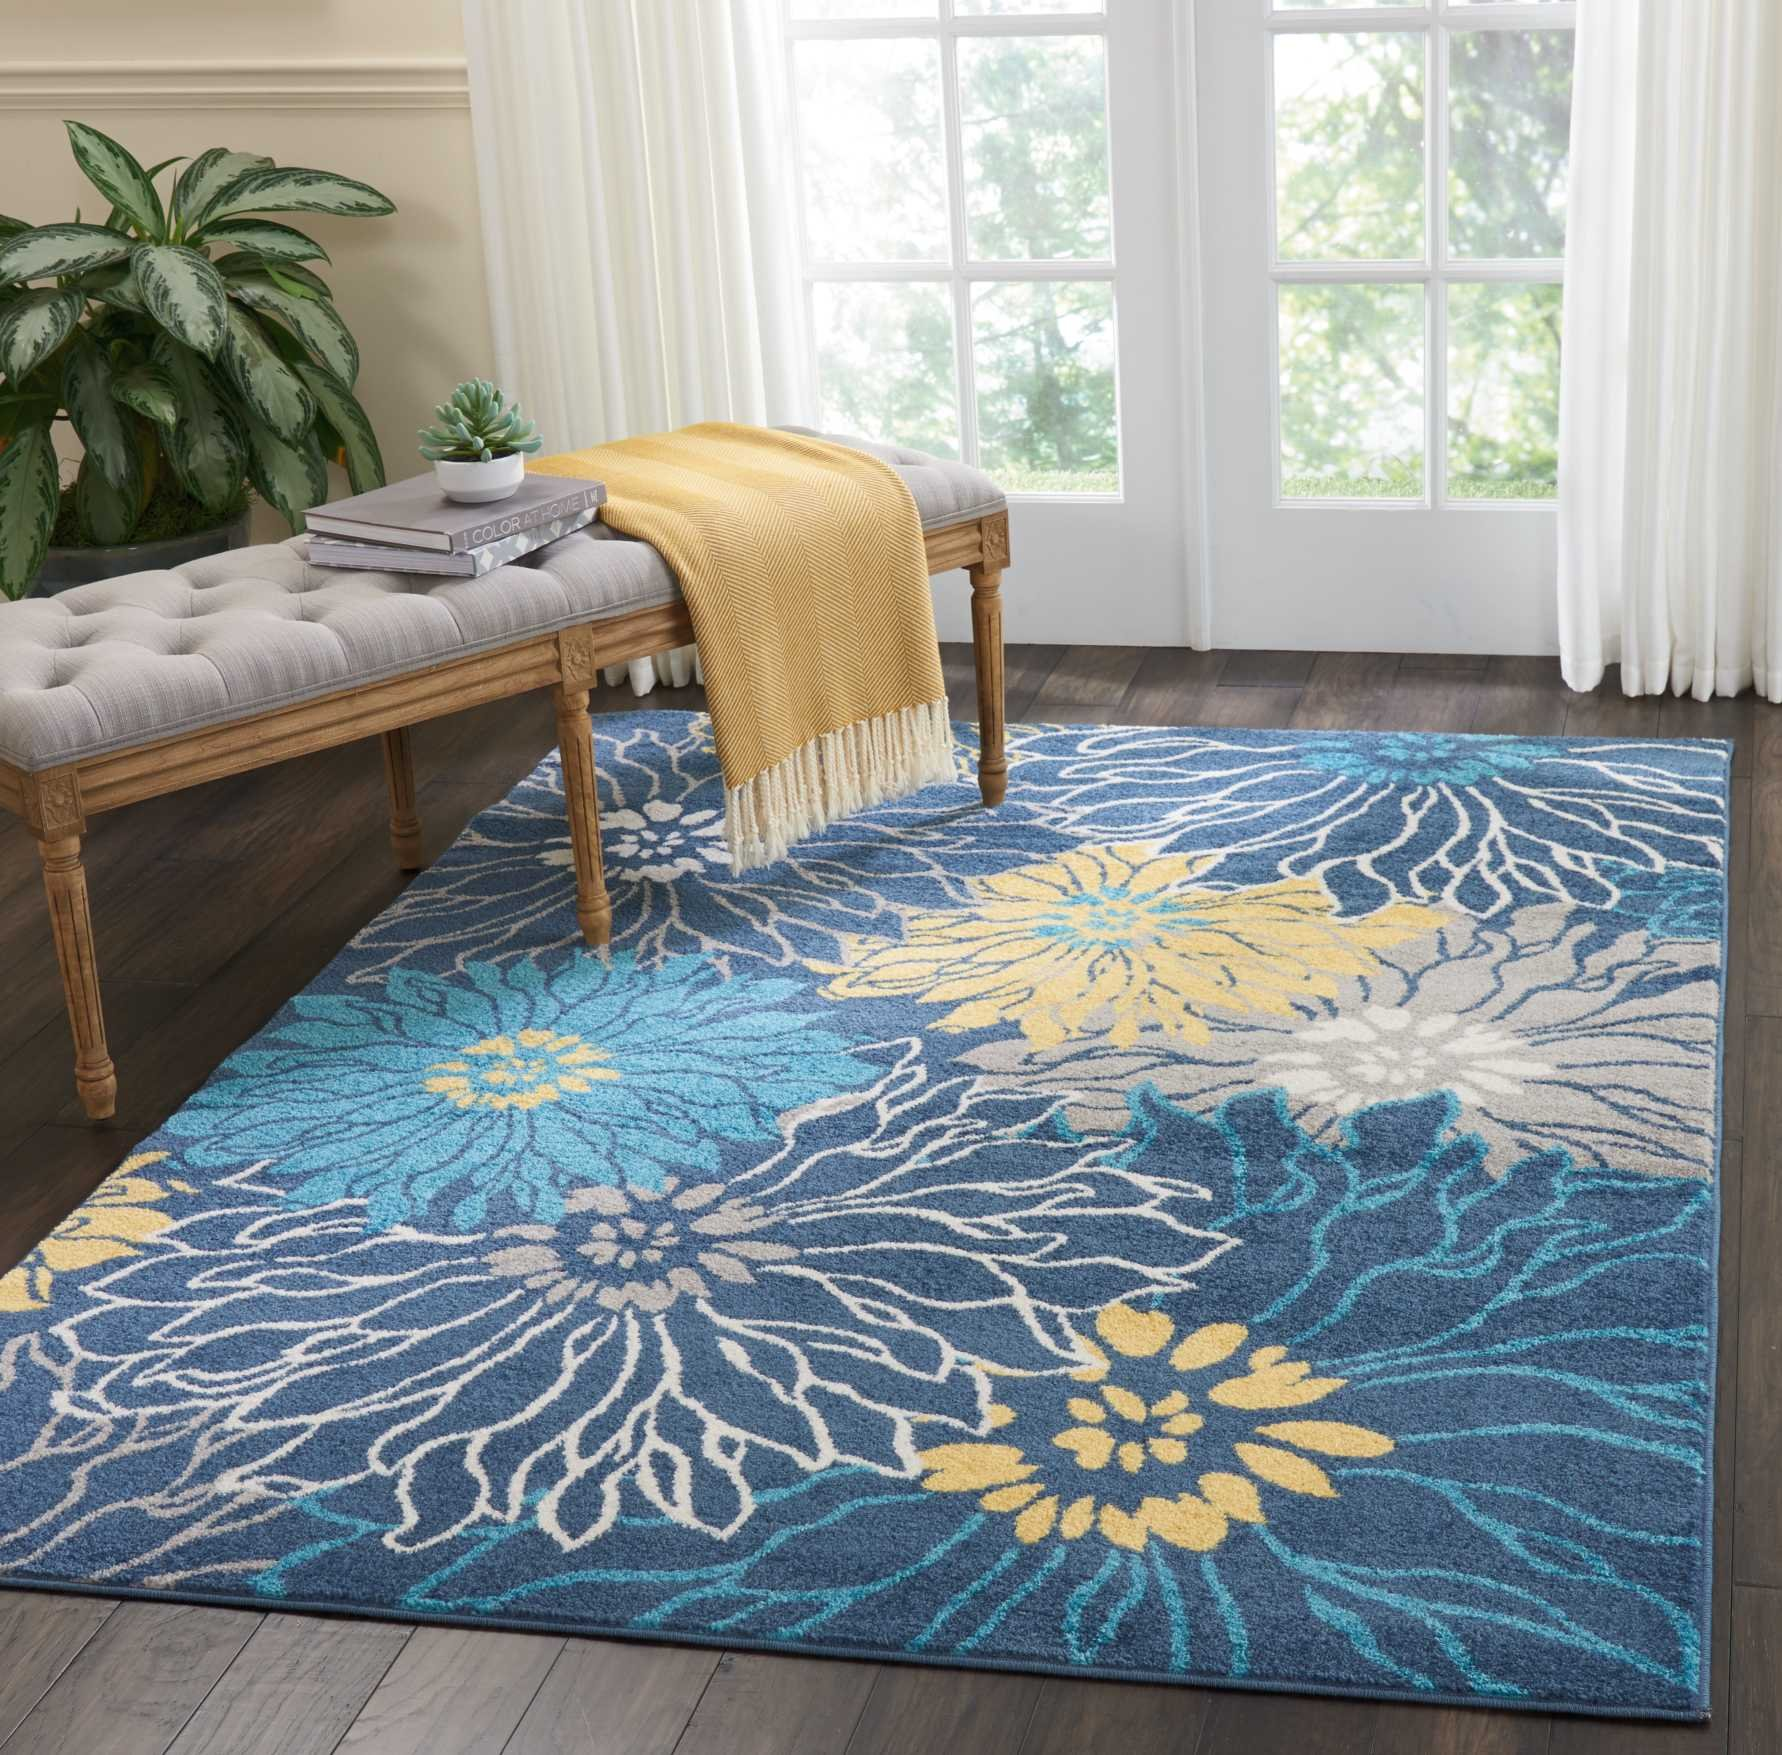 """Nourison  Passion Area Rug, 5'3"""" x7'3, BLUE - SOFT TO THE TOUCH: .5"""" pile height and polypropylene fibers are inviting underfoot STAIN RESISTANT, FADE RESISTANT:  No shedding and easy to clean MODERN, FLORAL STYLE: Colorful, bold, borderless design - living-room-soft-furnishings, living-room, area-rugs - 910koLwleSL -"""